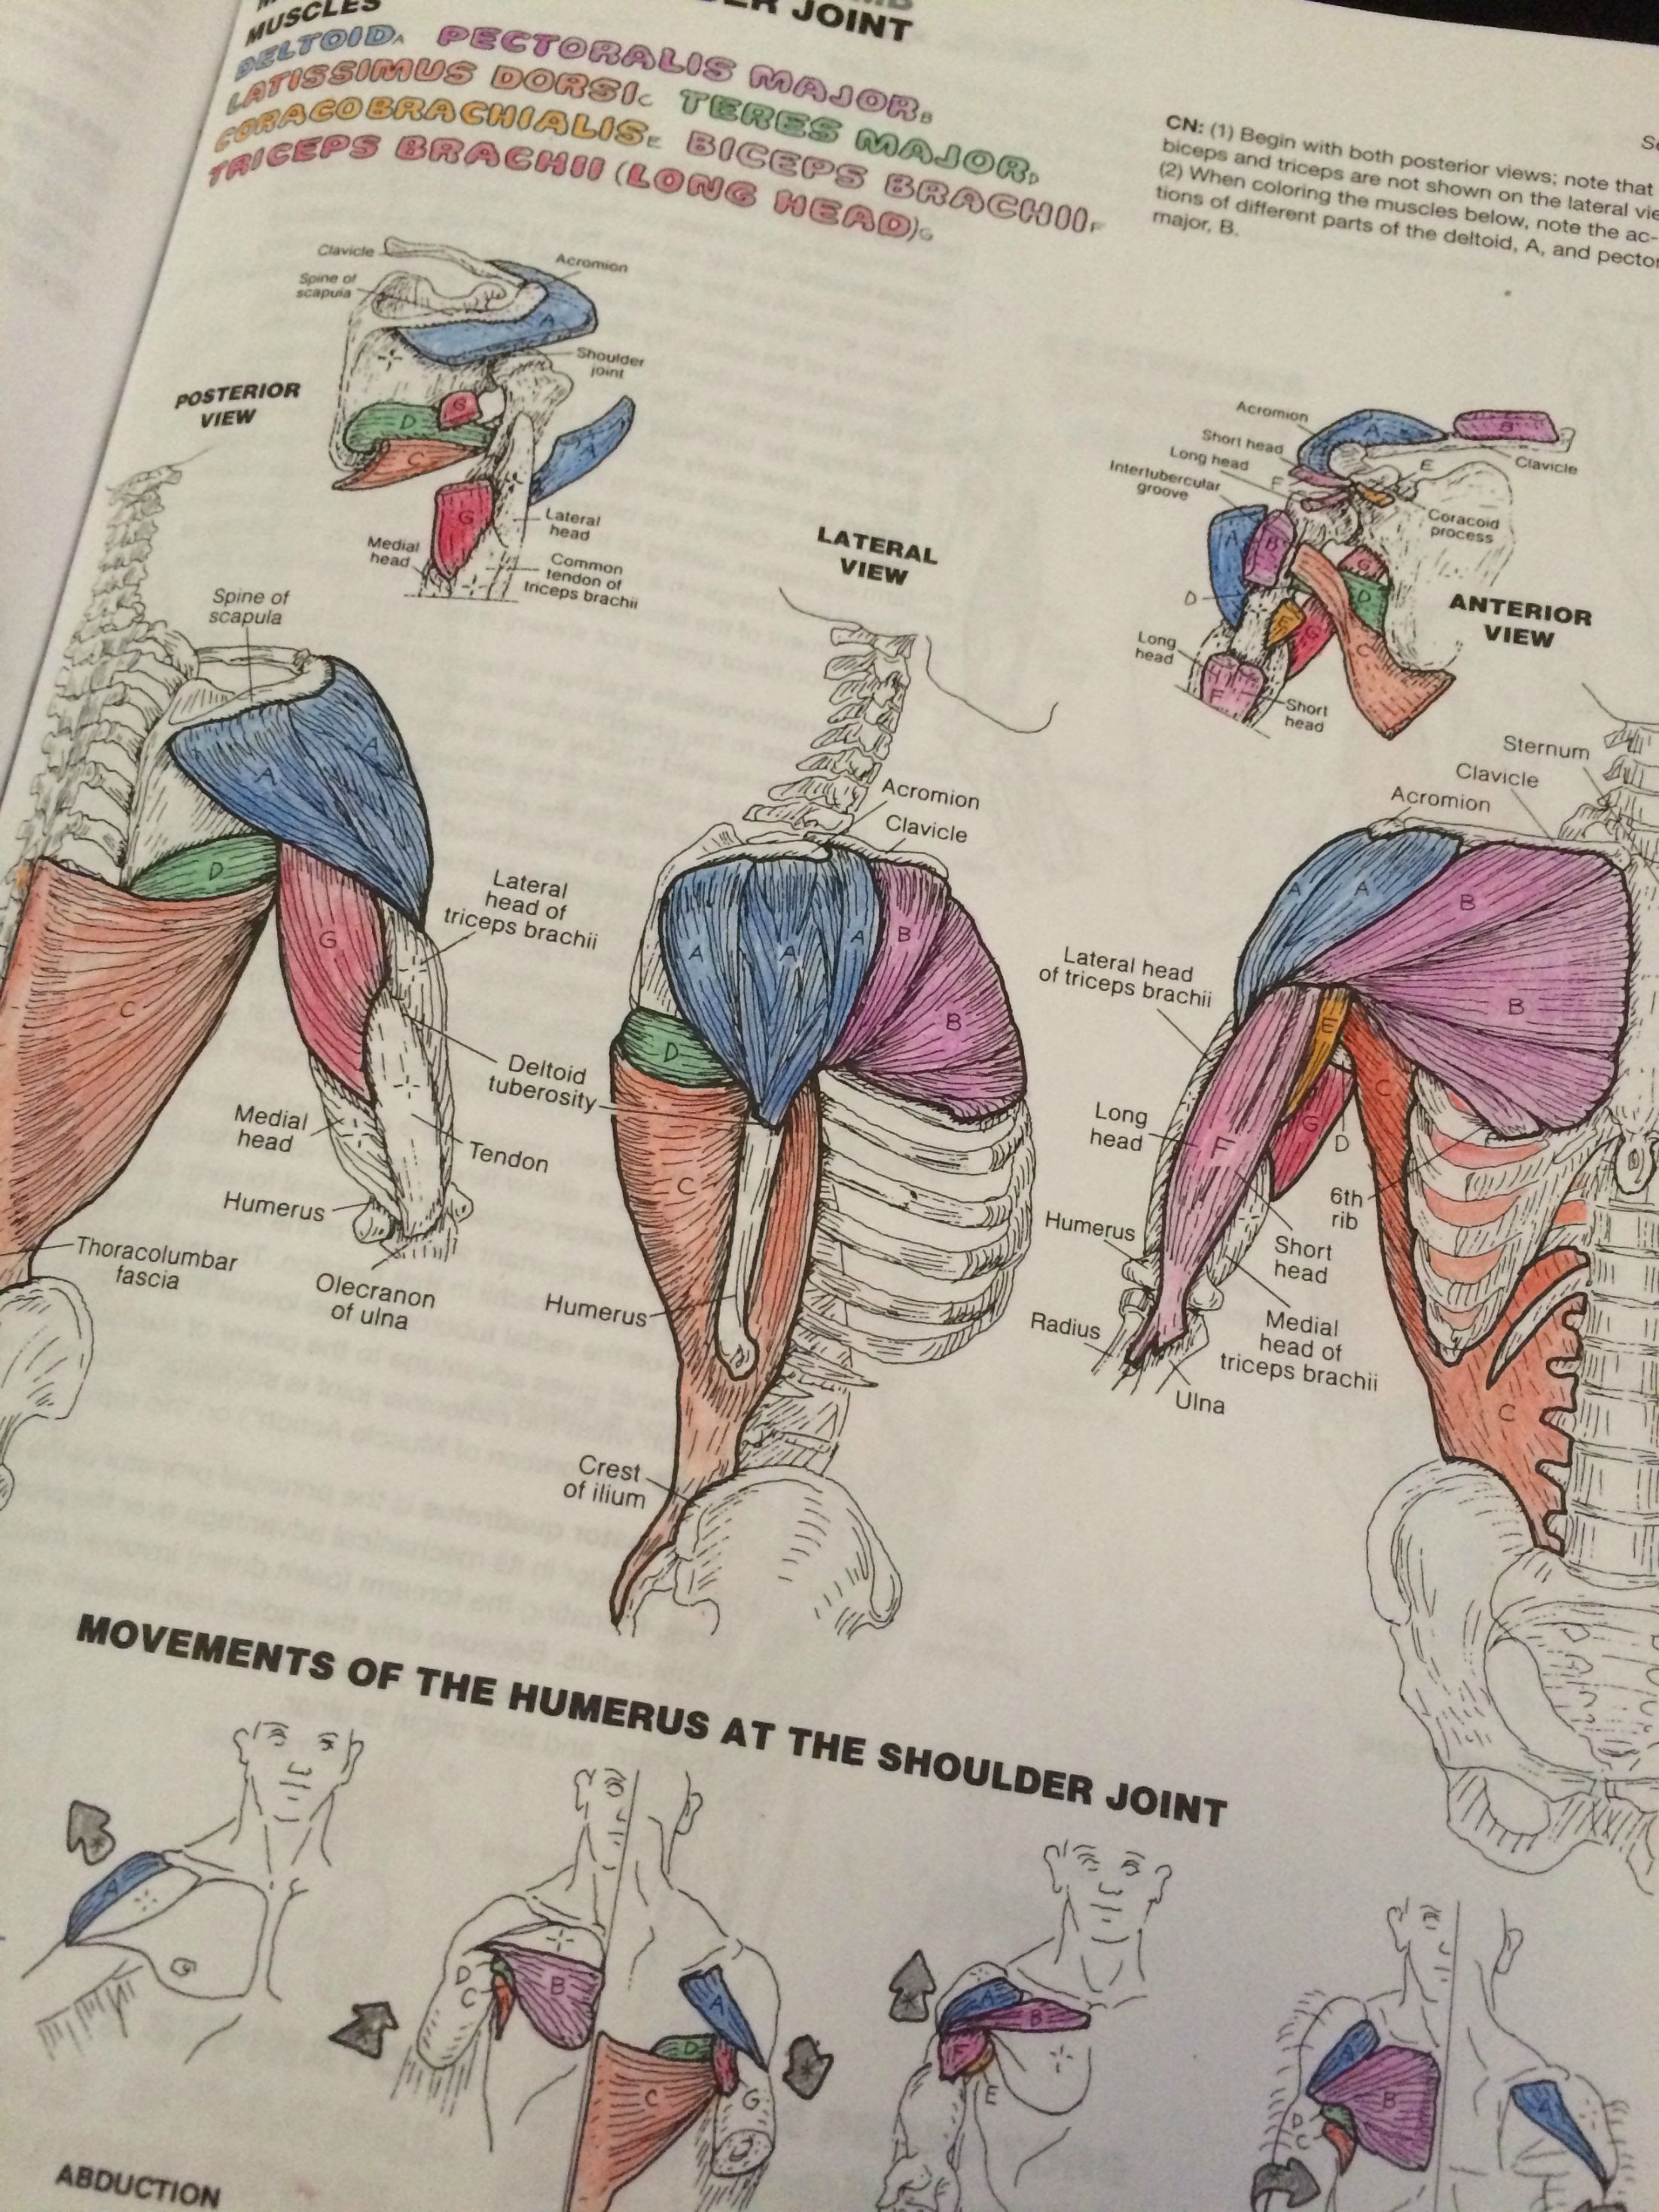 Anatomy And Physiology Coloring Workbook Answer Key Lovely 48 Most First Class Dental Anatomy Coloring Anatomy Coloring Book Coloring Books Coloring Book Pages